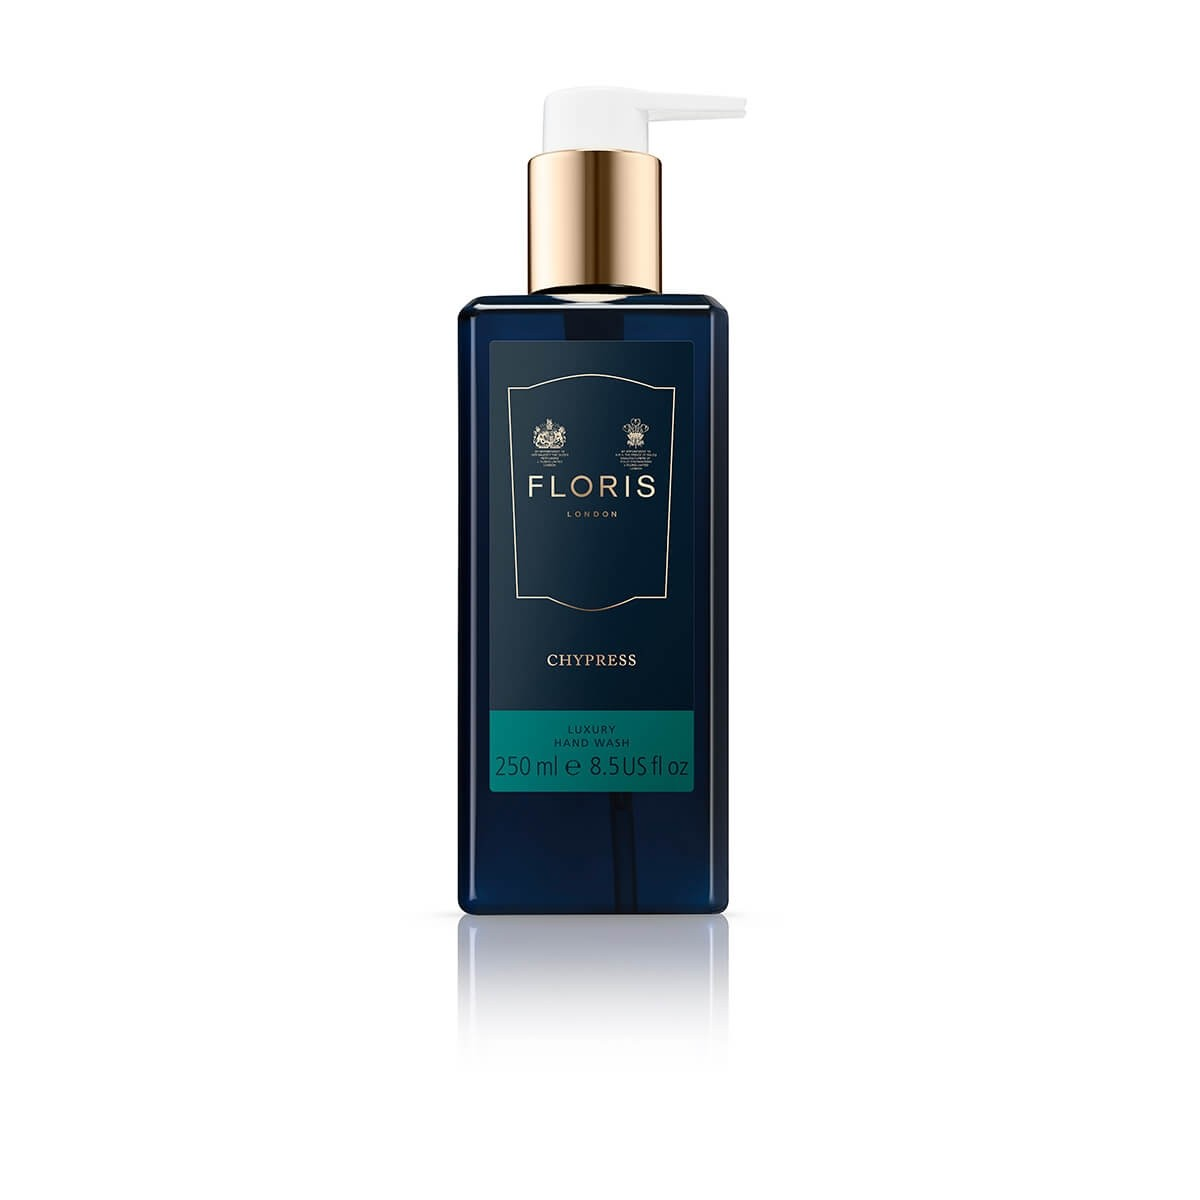 Floris Chypress Luxury Hand Wash